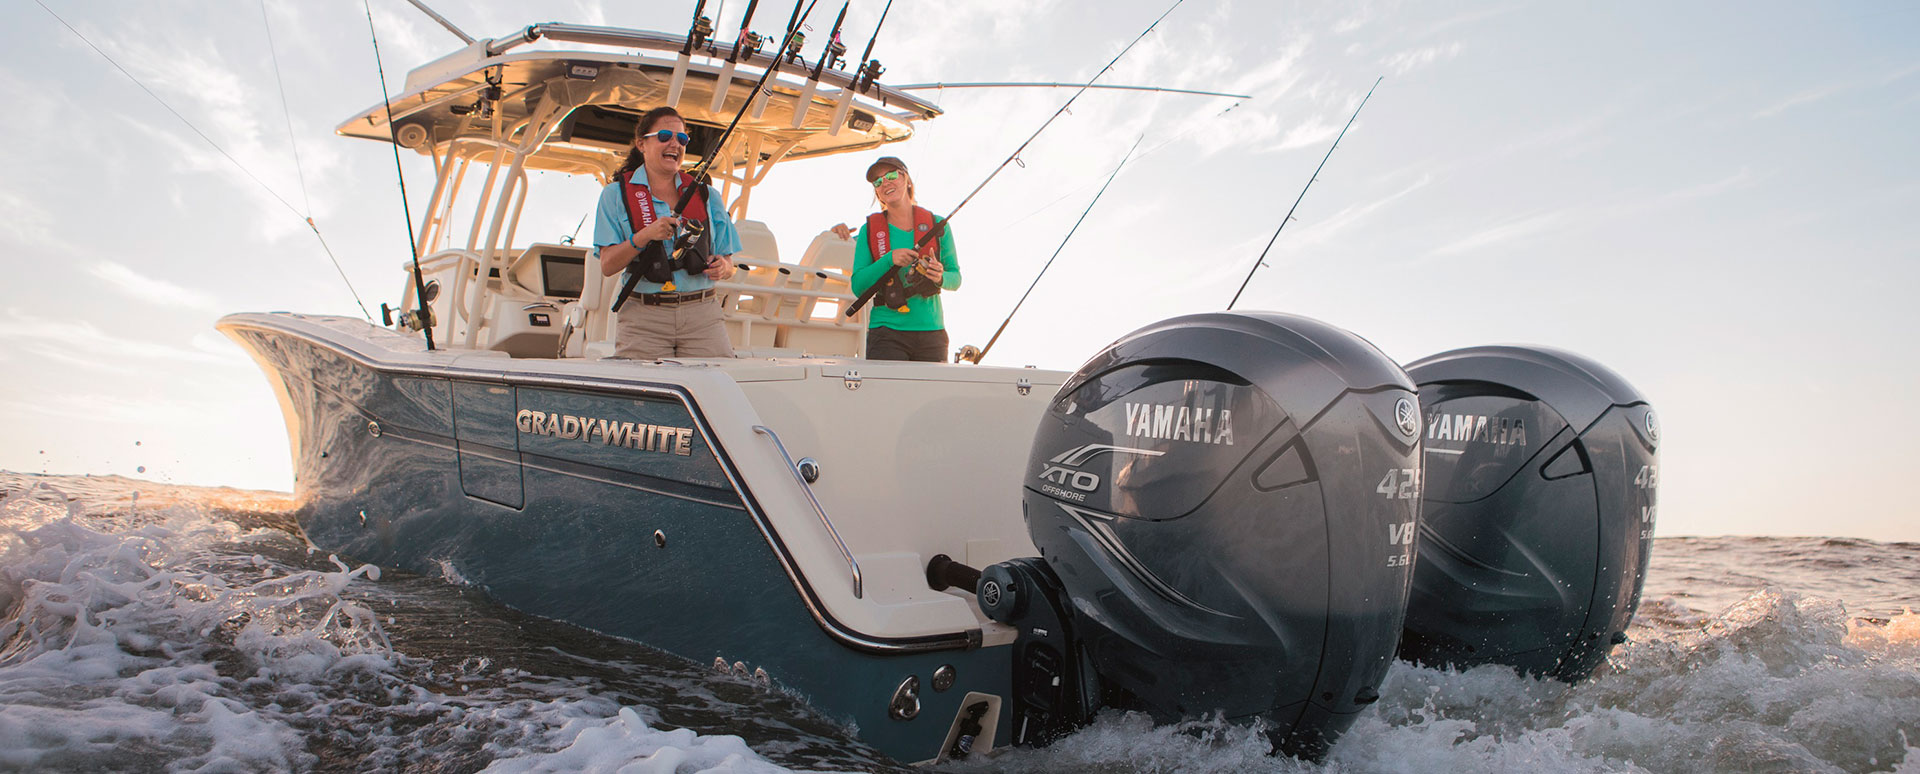 West Coast Marine offers Yamaha F425 Outboards